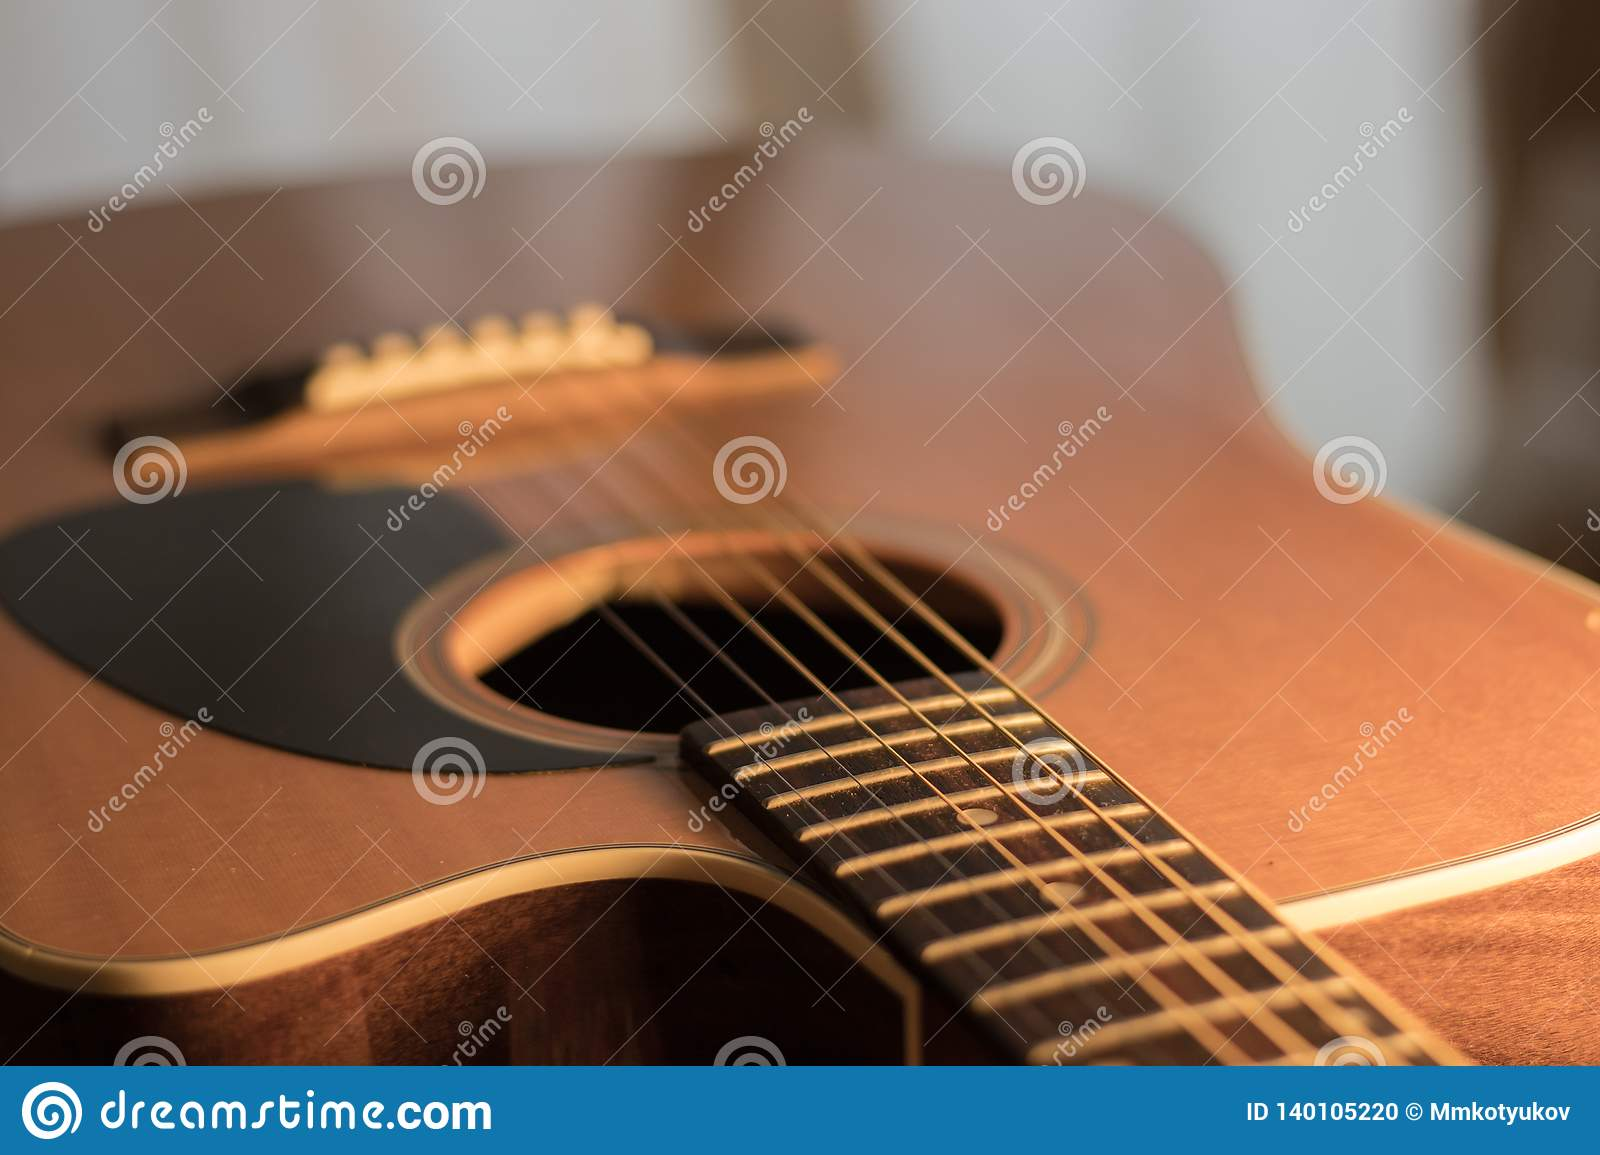 An Acoustic guitar body view